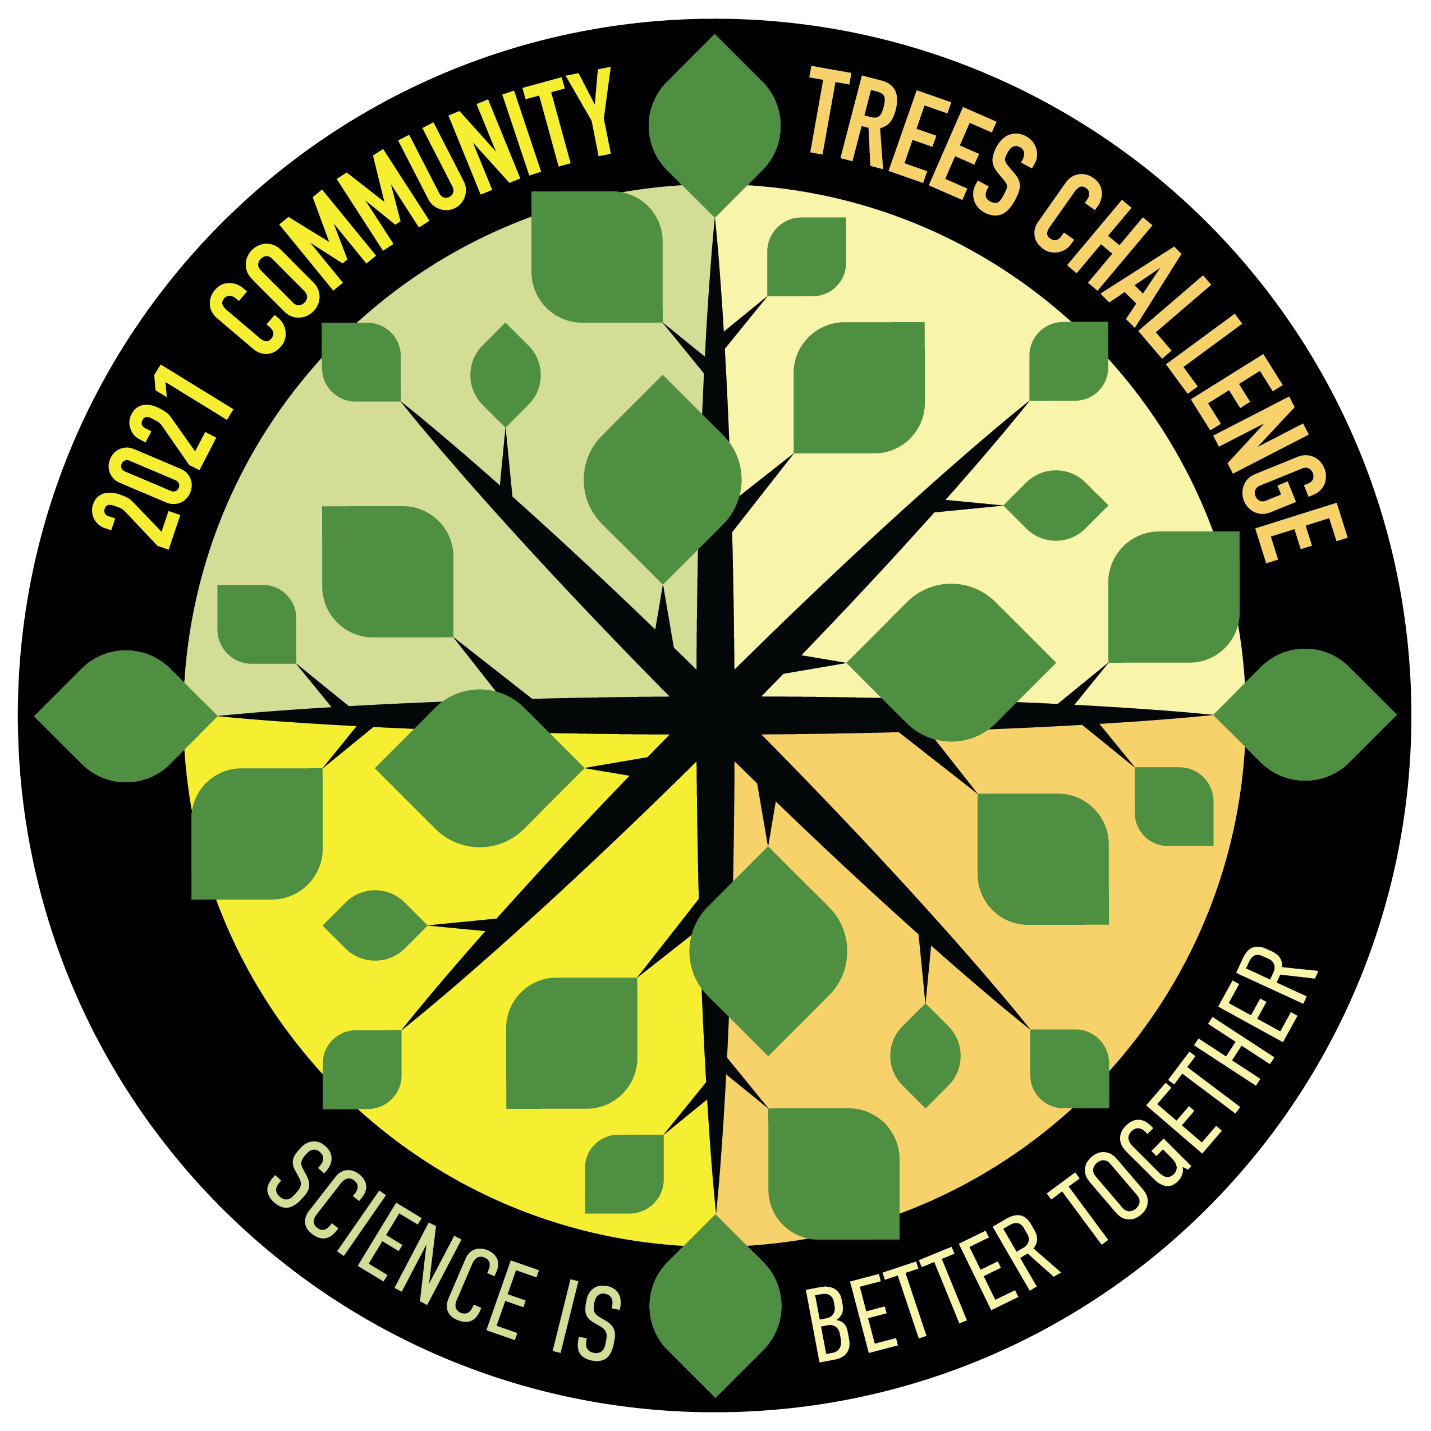 2021 Community Trees Challenge shareable